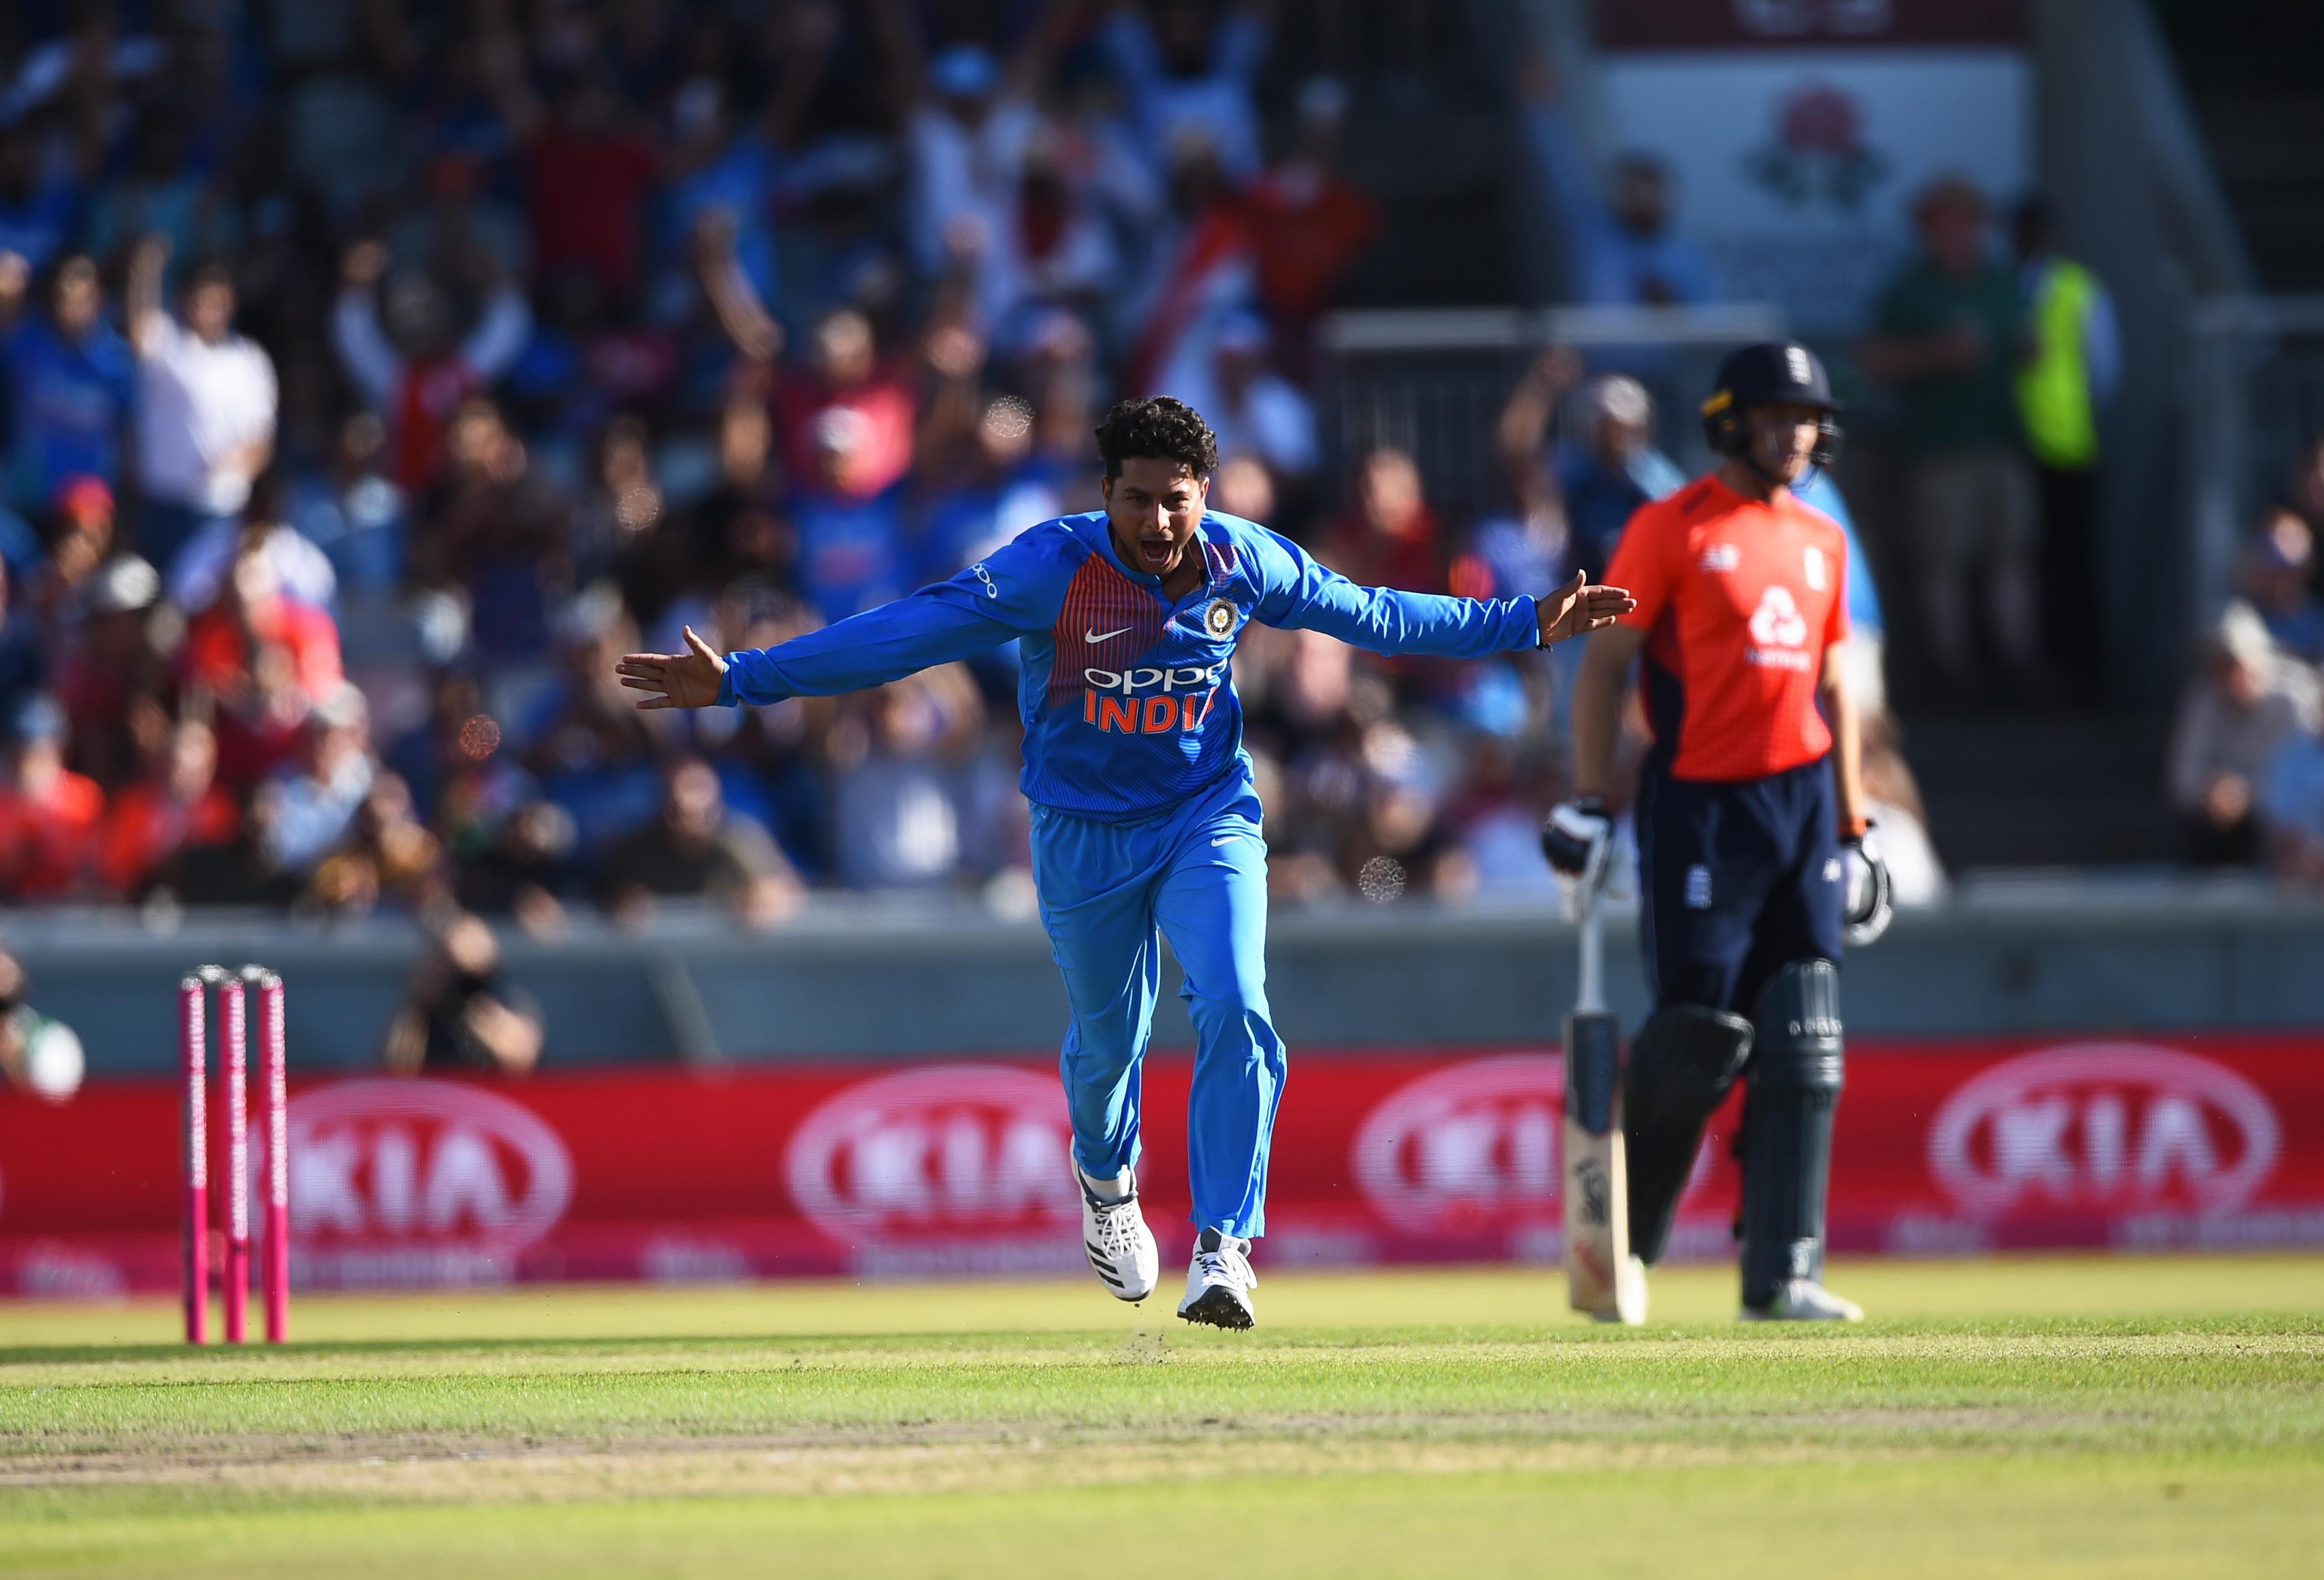 Kuldeep Yadav took five wickets in a brilliant spell to limit England to 159